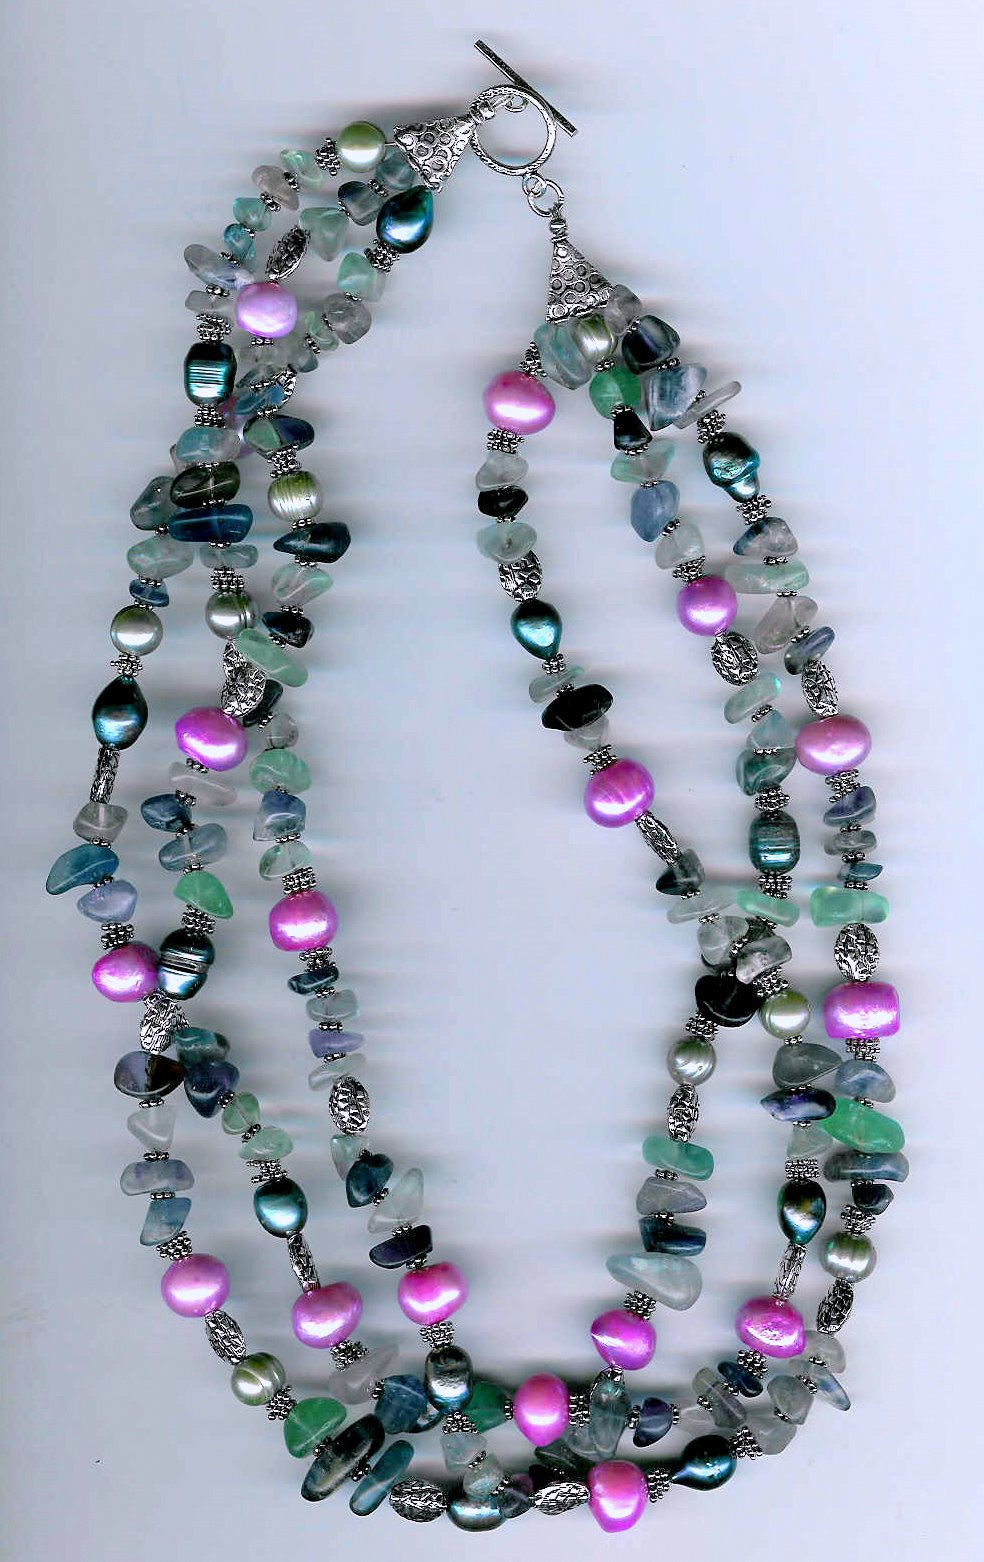 11. Fluorite, Crystals, Freshwater multi-coloured Pearls with Bali Sterling Silver